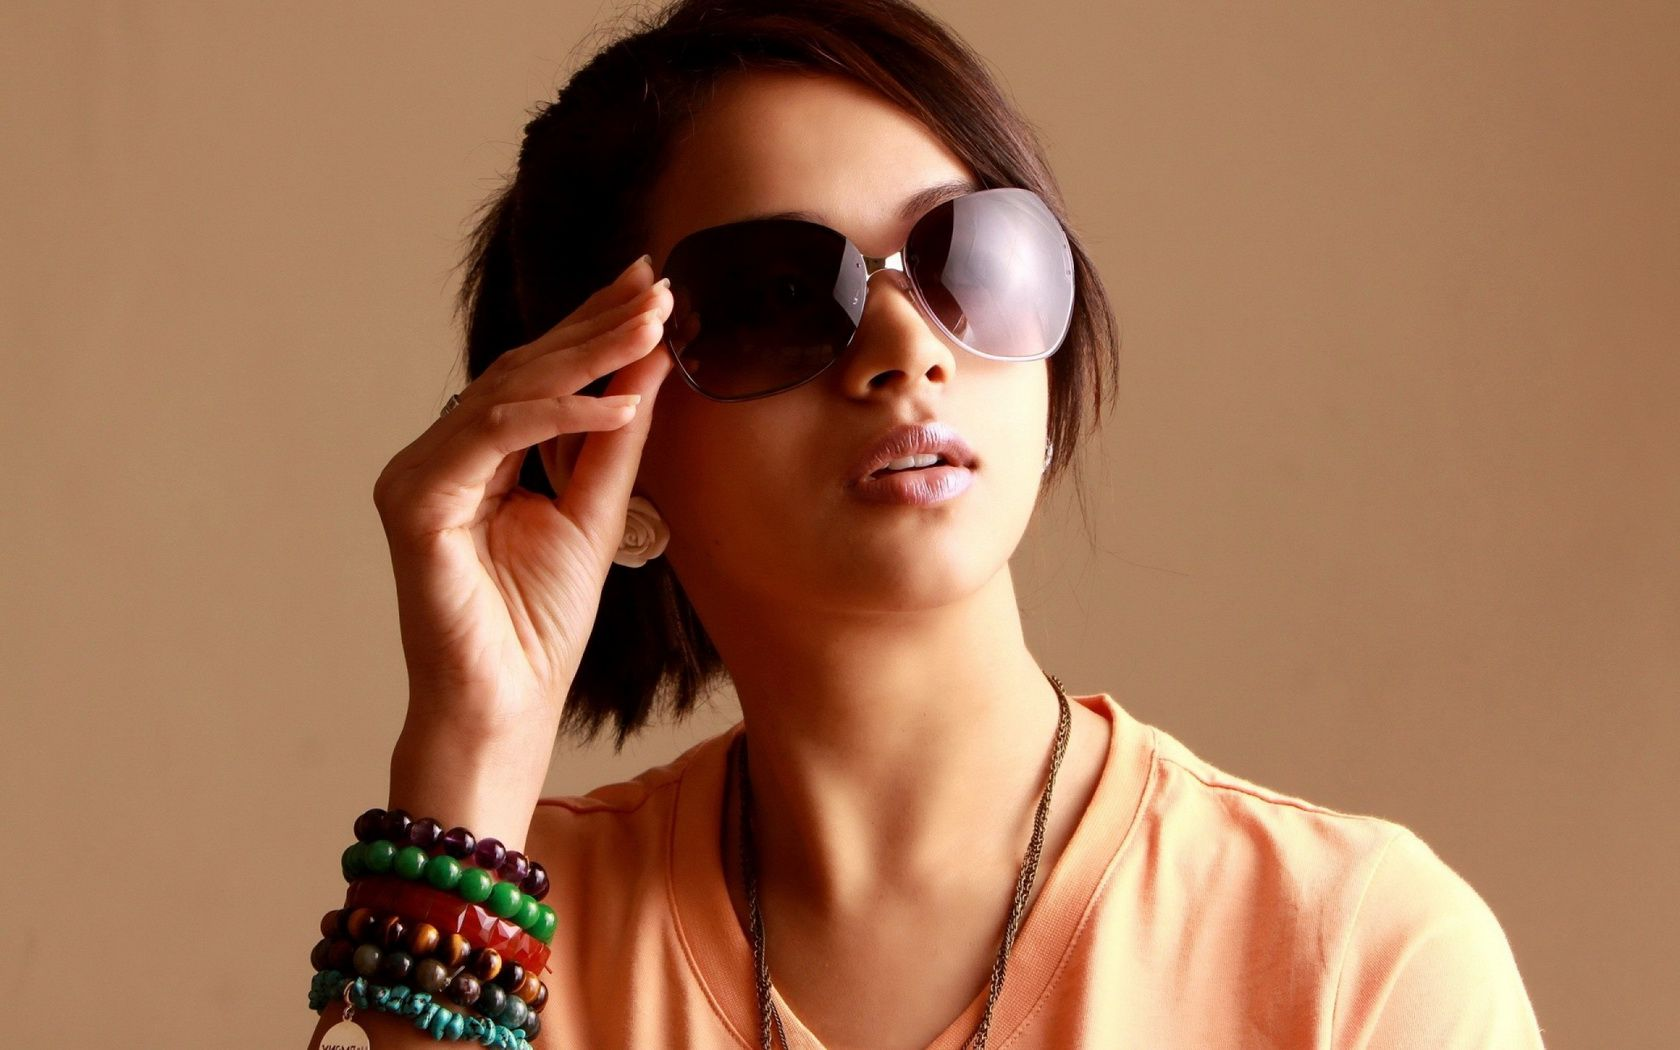 7c5a456718 Woman Girl Beauty Face Sunglasses Actress Bhavana India wallpaper Image  source from this